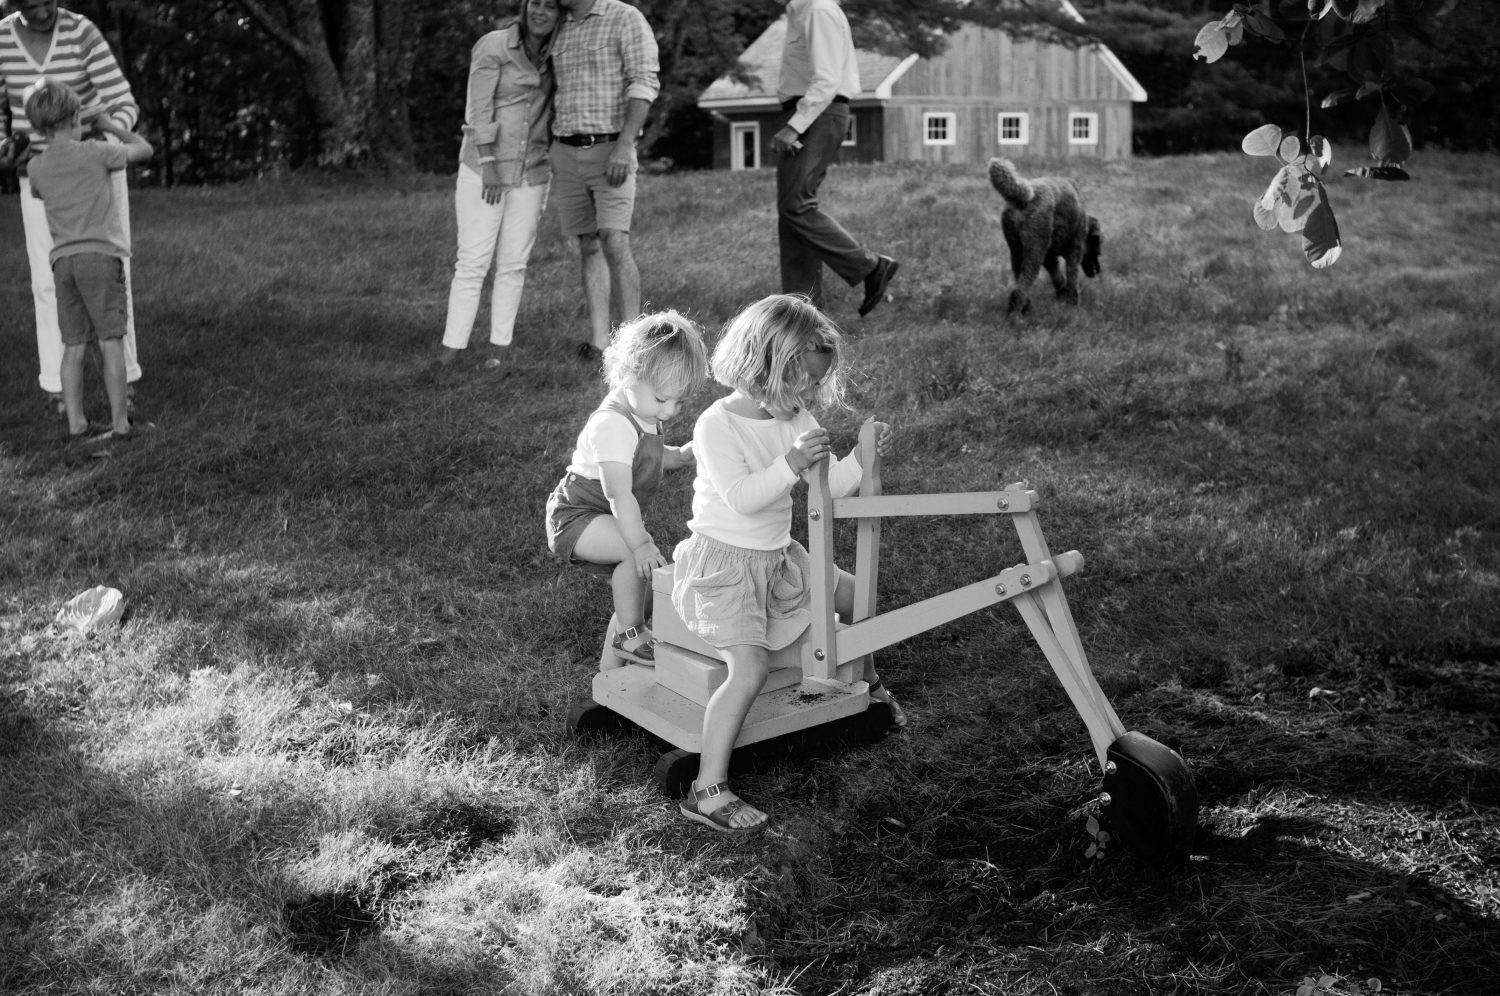 family playing together in a field